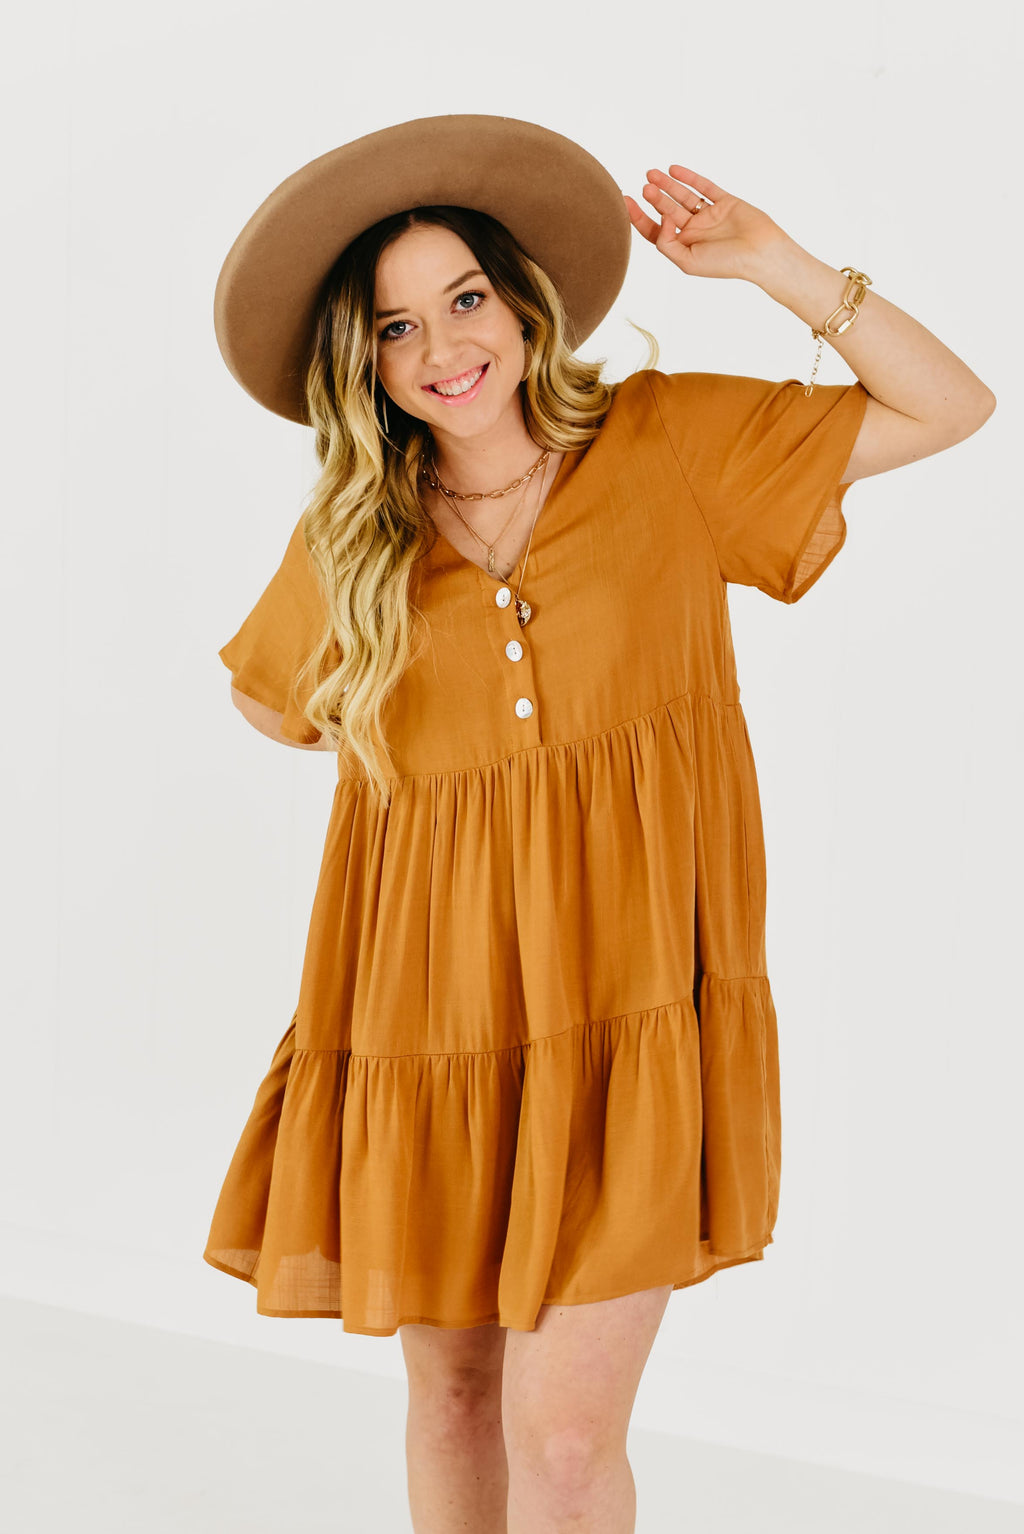 The Rianna Tiered Dress - Amber